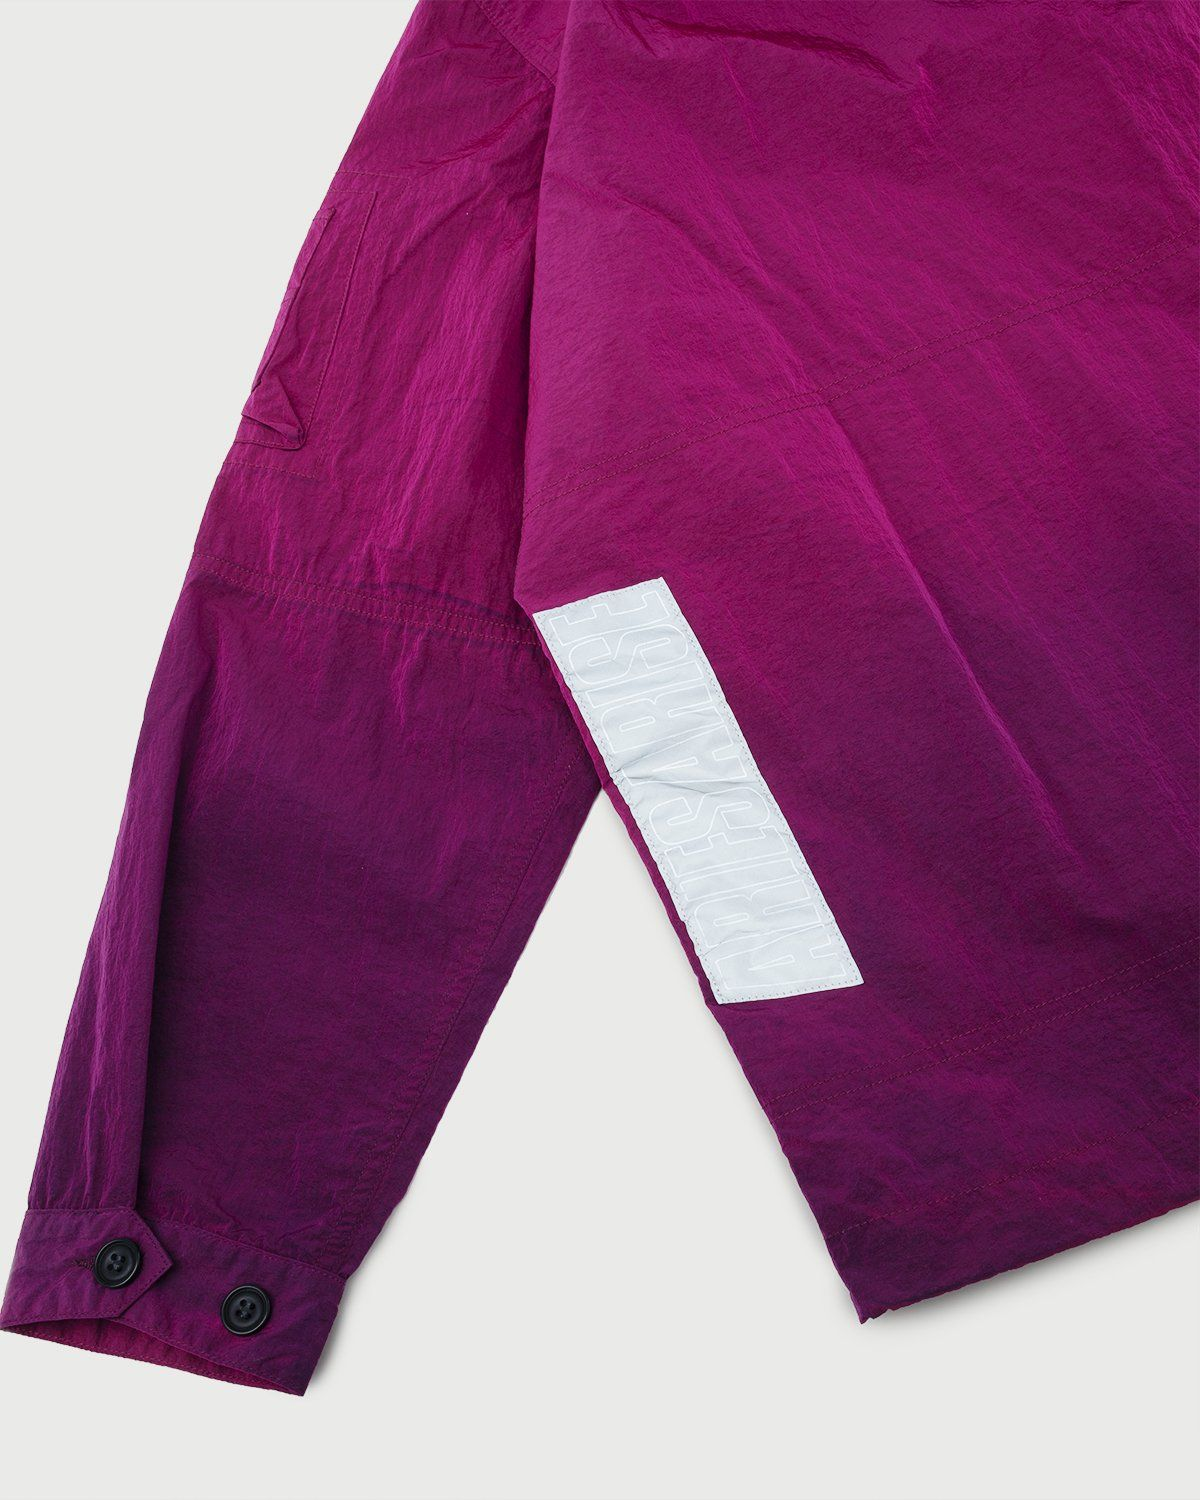 Aries - Ombre Dyed Tech Jacket Fuchsia - Image 5